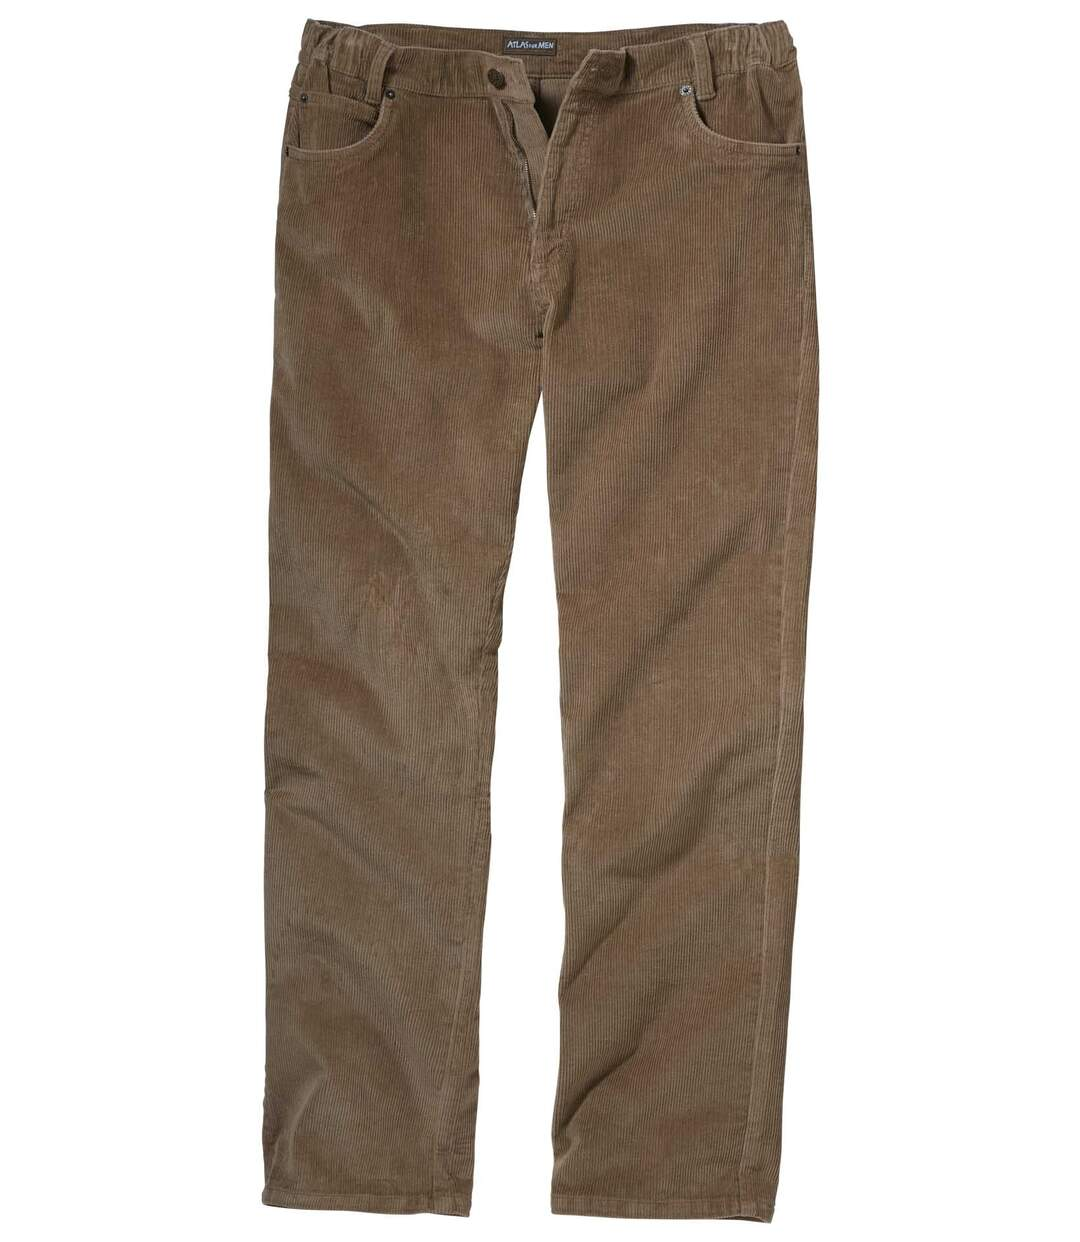 Men's Brown Stretchy Corduroy Trousers